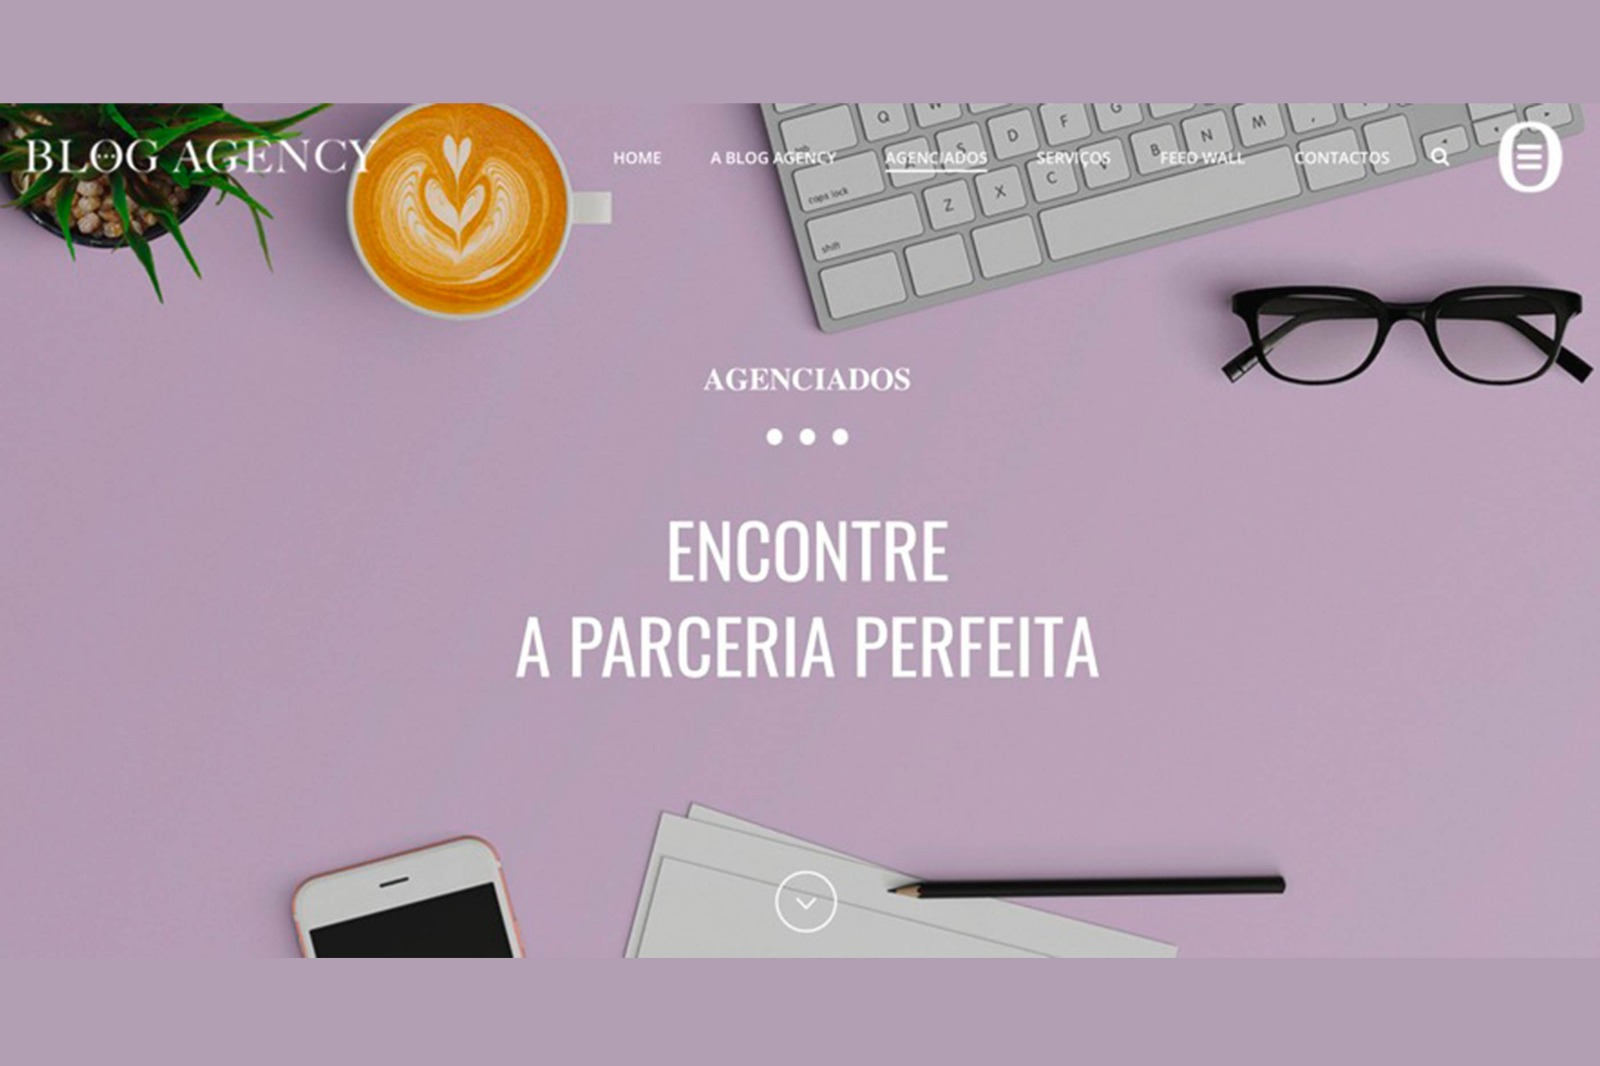 Print Screen do Site da Empresa Blog Agency